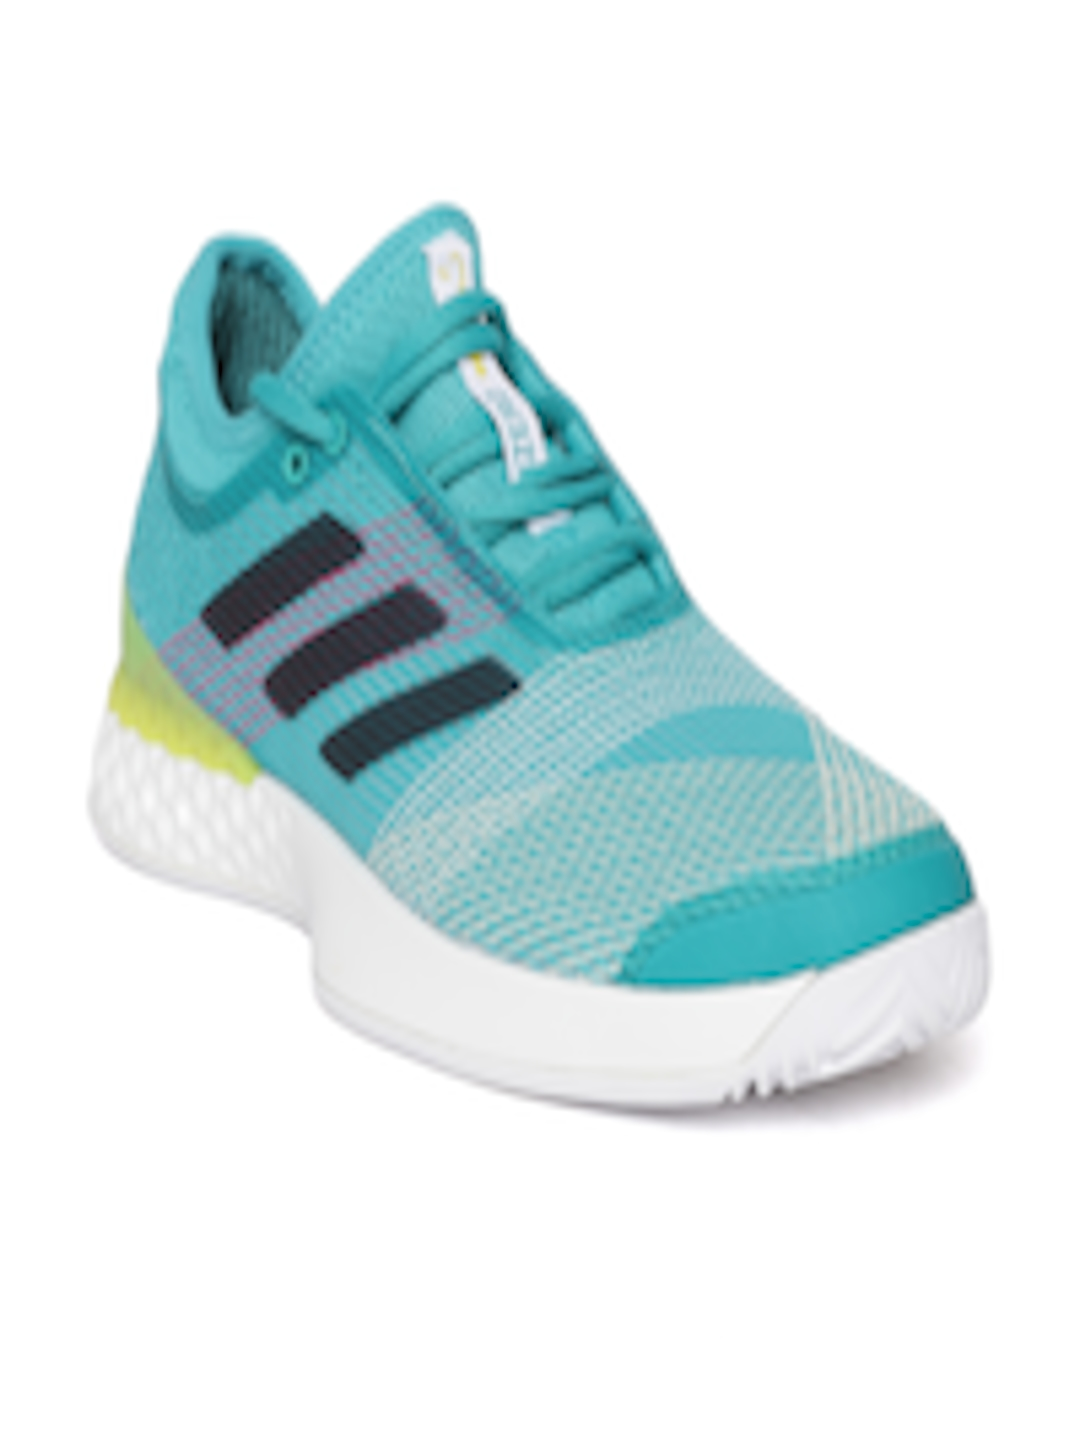 f2ed18a92 Buy ADIDAS Men Green & Off White ADIZERO Ubersonic 3 Tennis Shoes - Sports  Shoes for Men 6842234 | Myntra